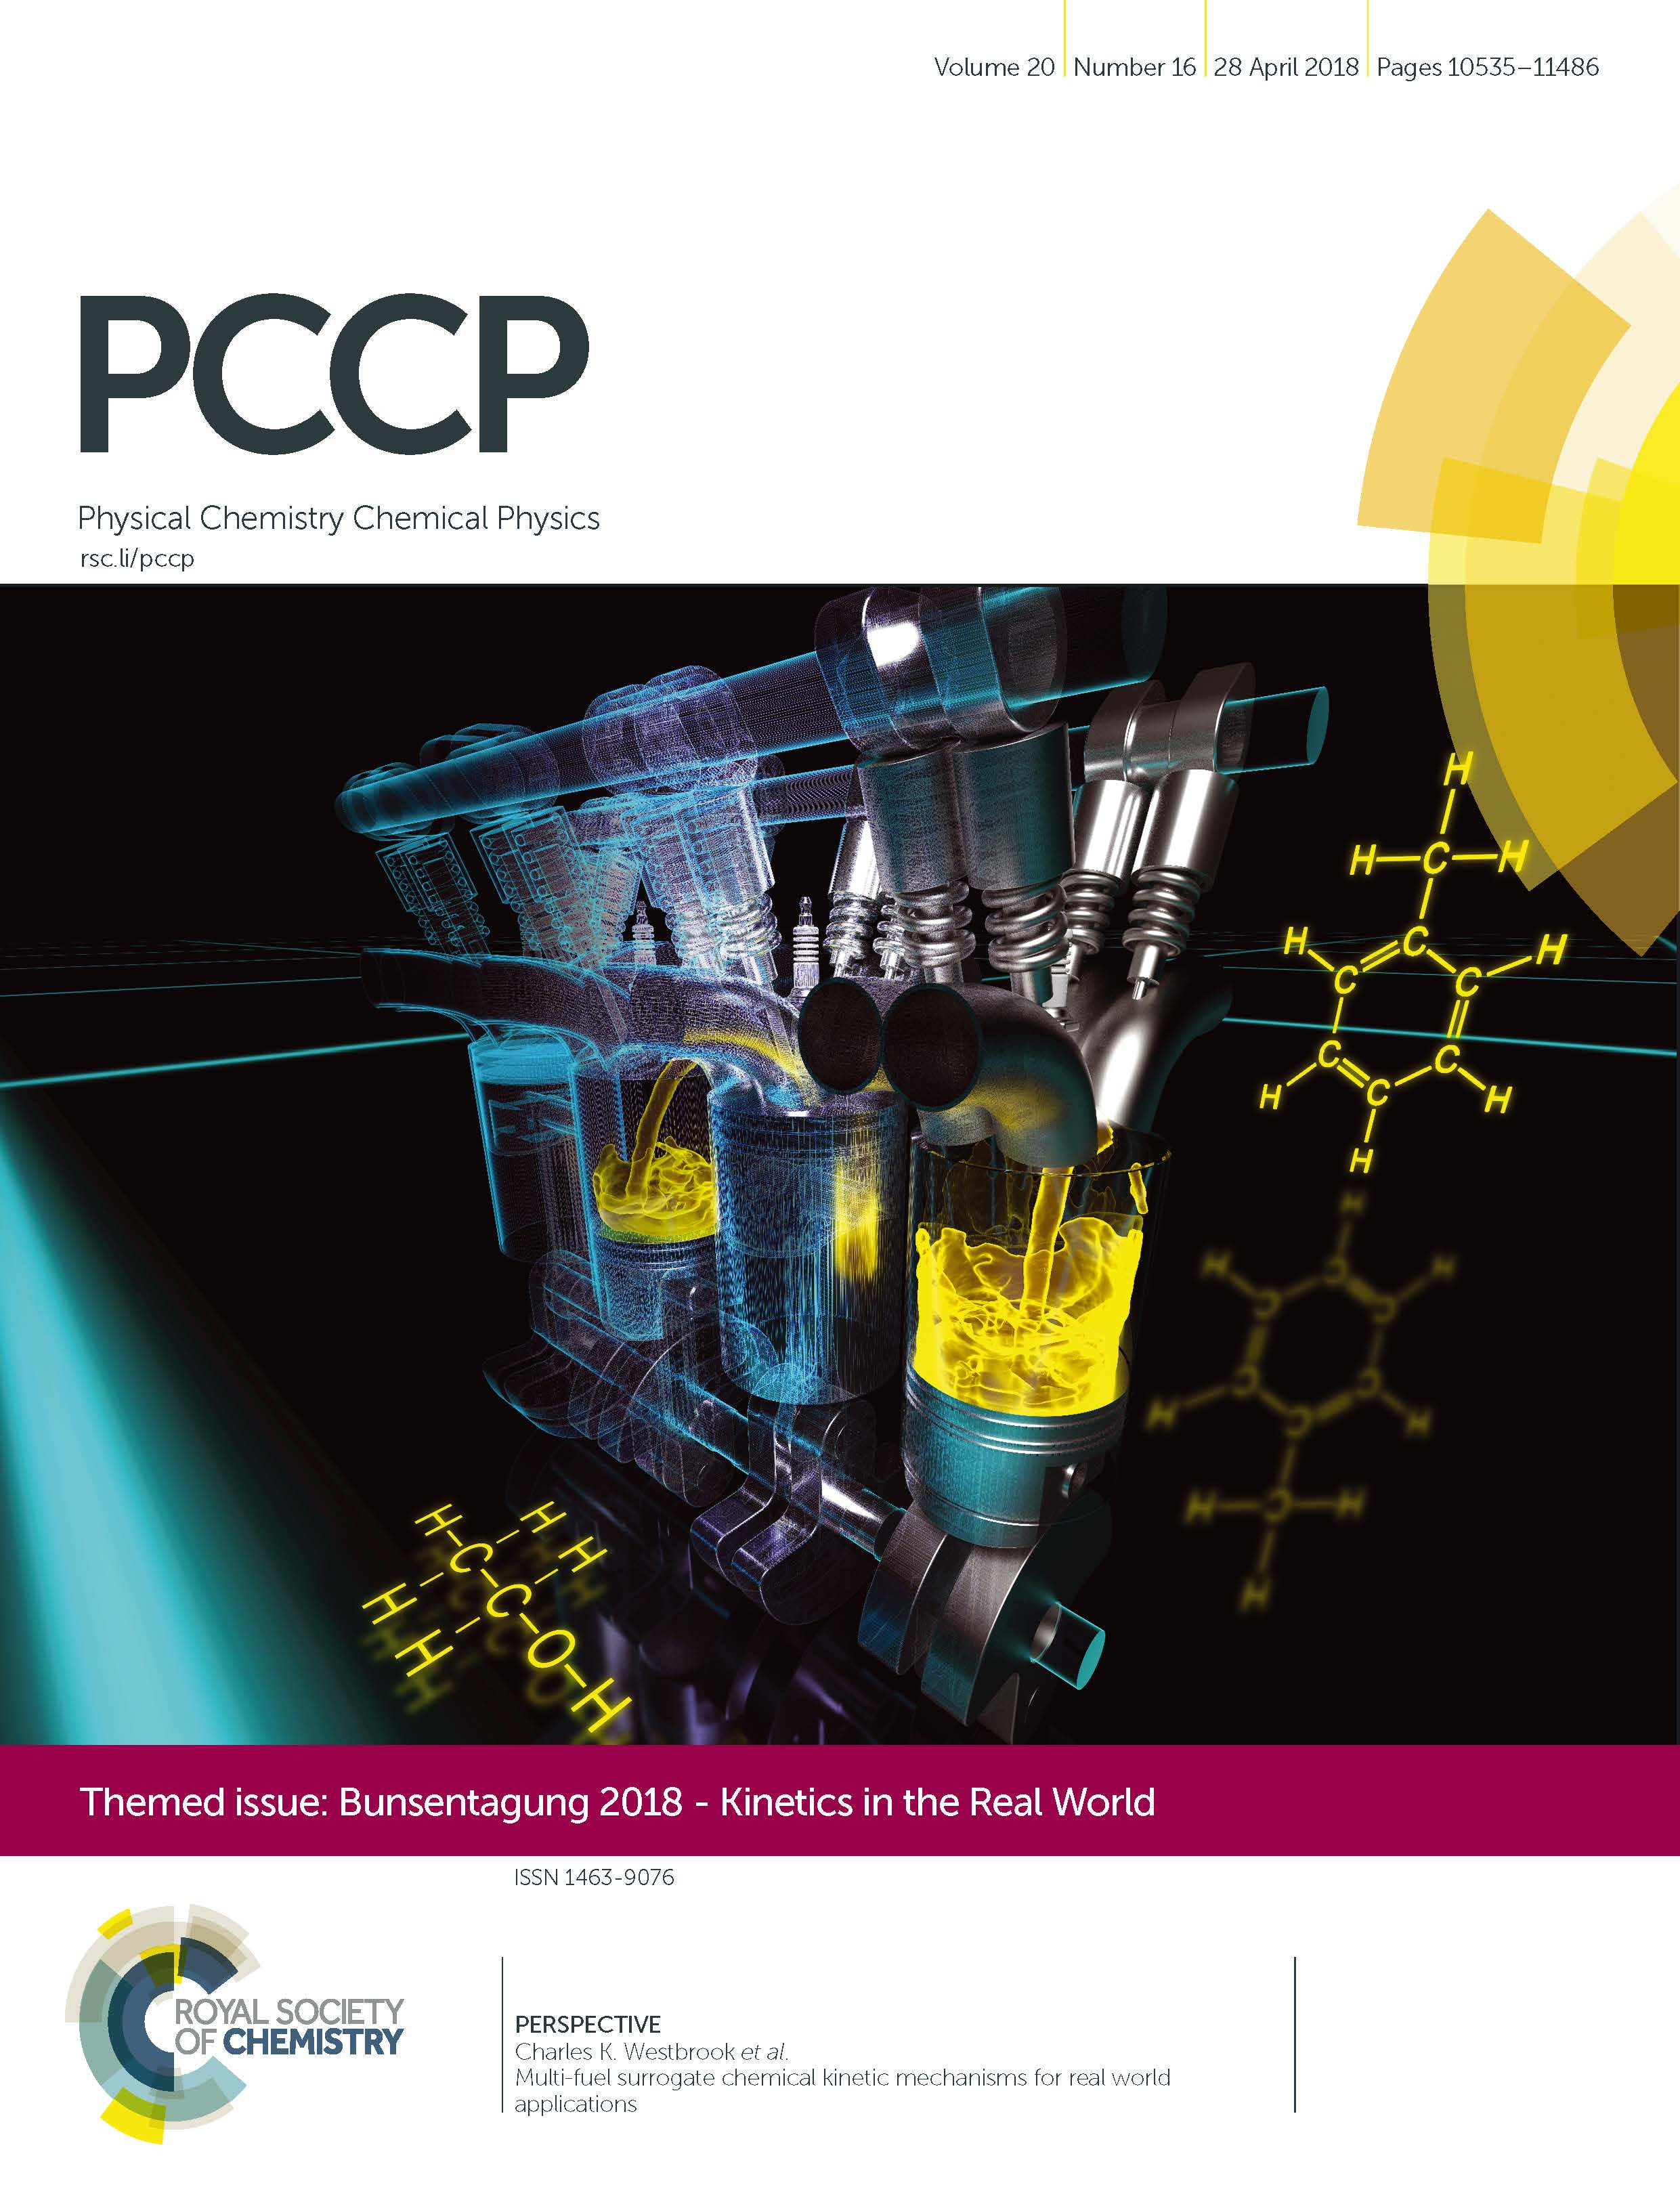 The cover of the PCCP journal.